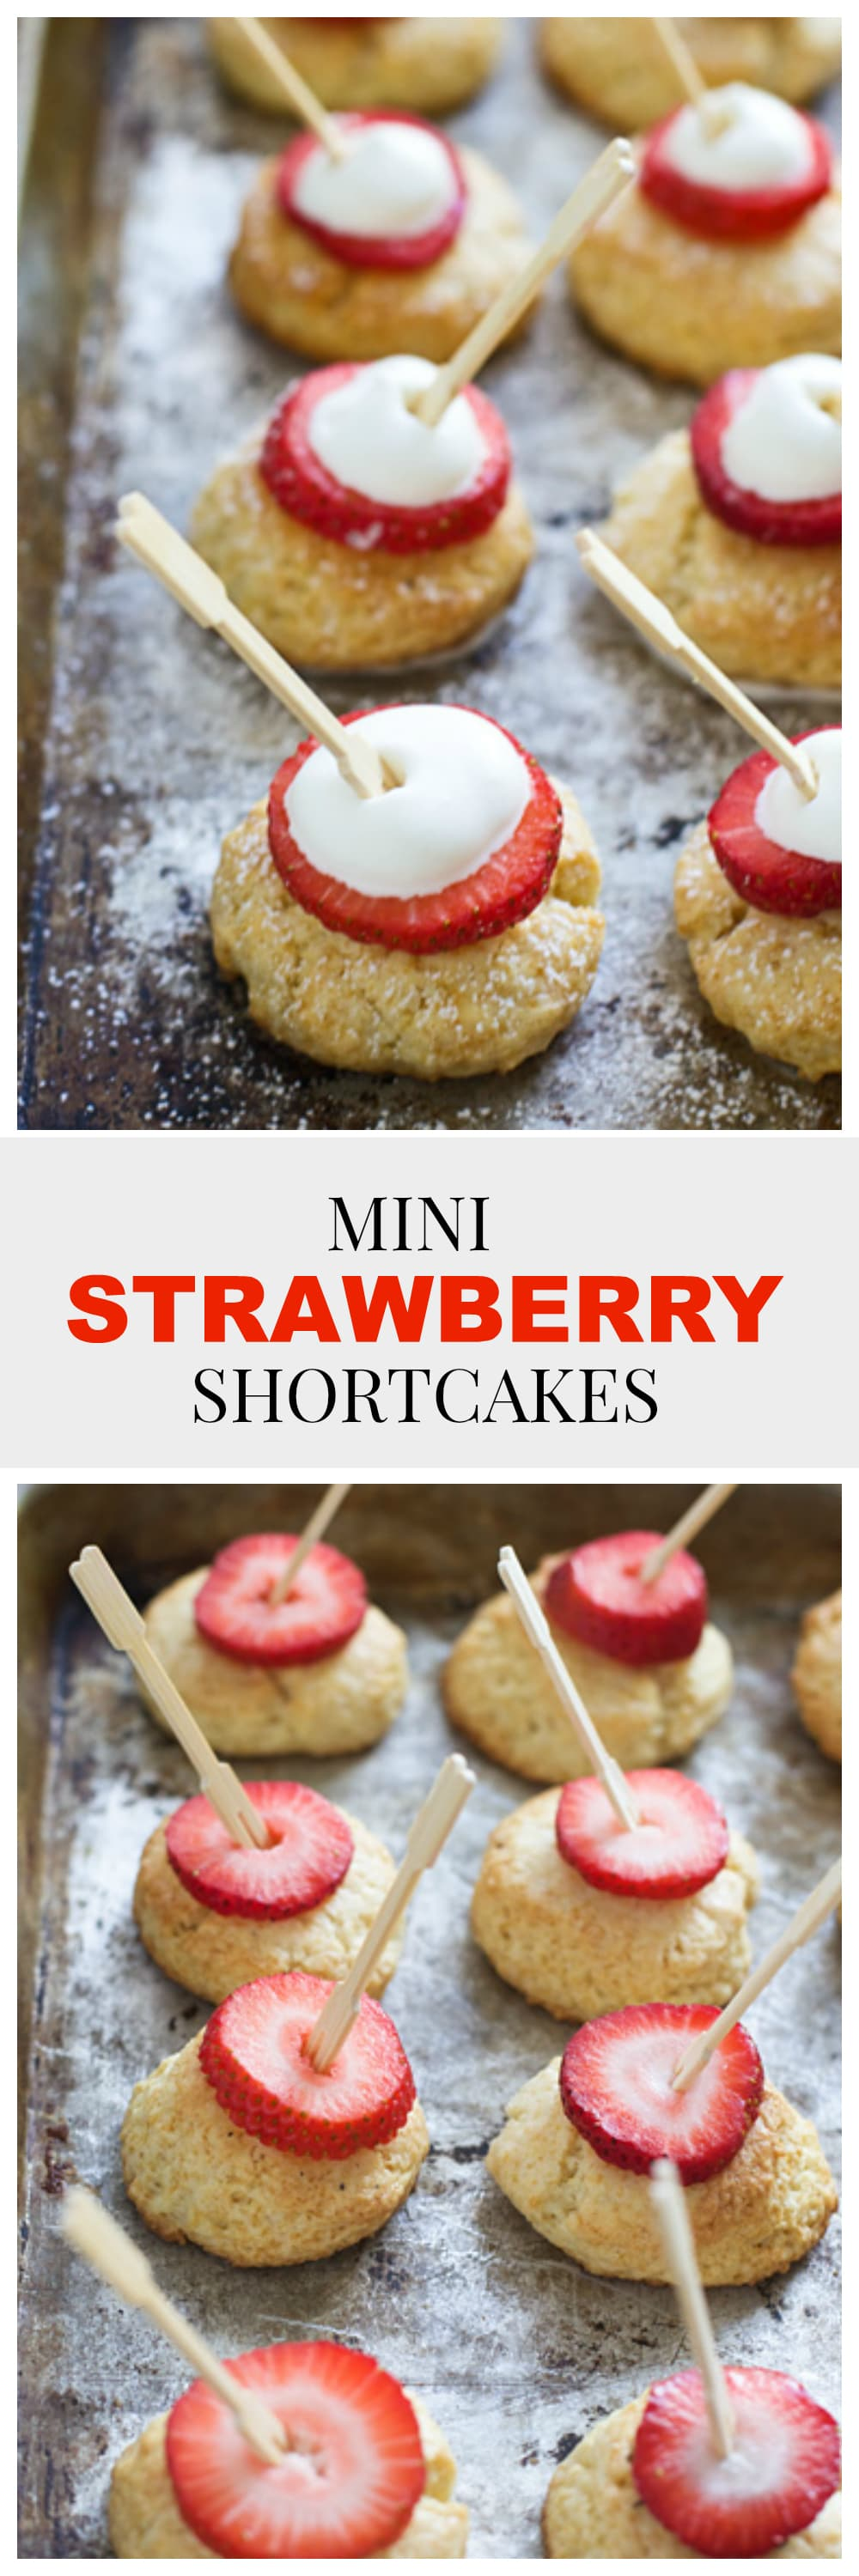 These Mini Strawberry Shortcakes are the perfect, easy delicious bite for summer entertaining!